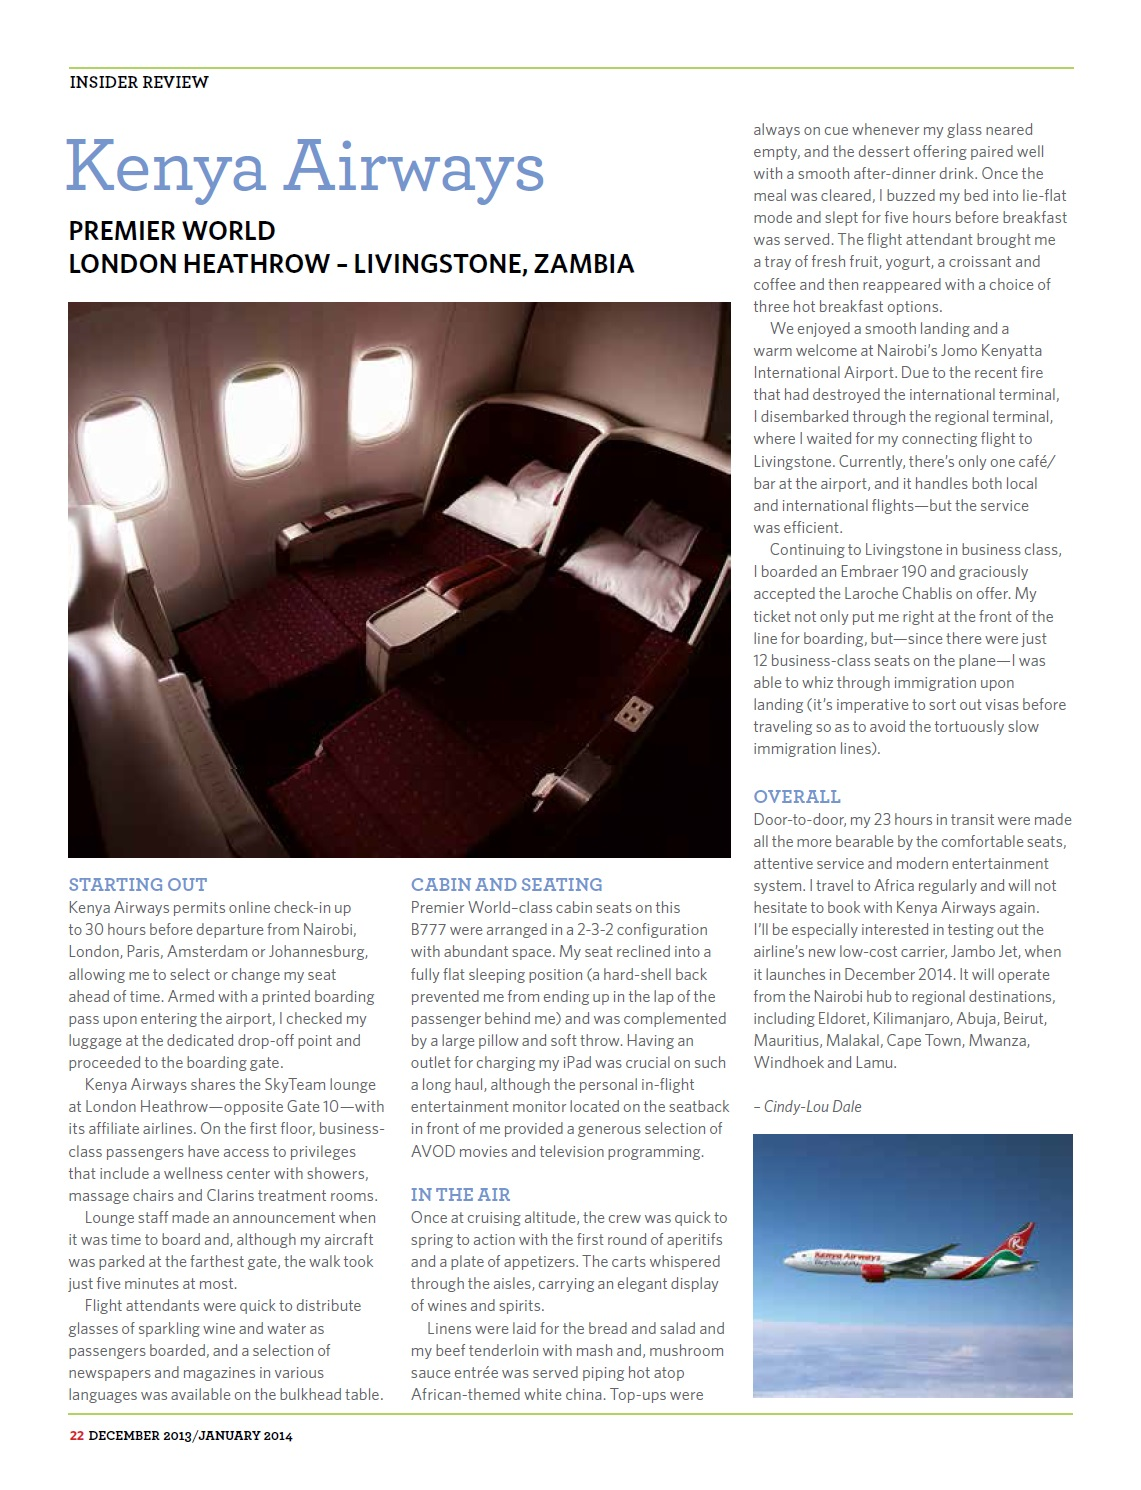 Premier Traveler, USA - Kenya Airways